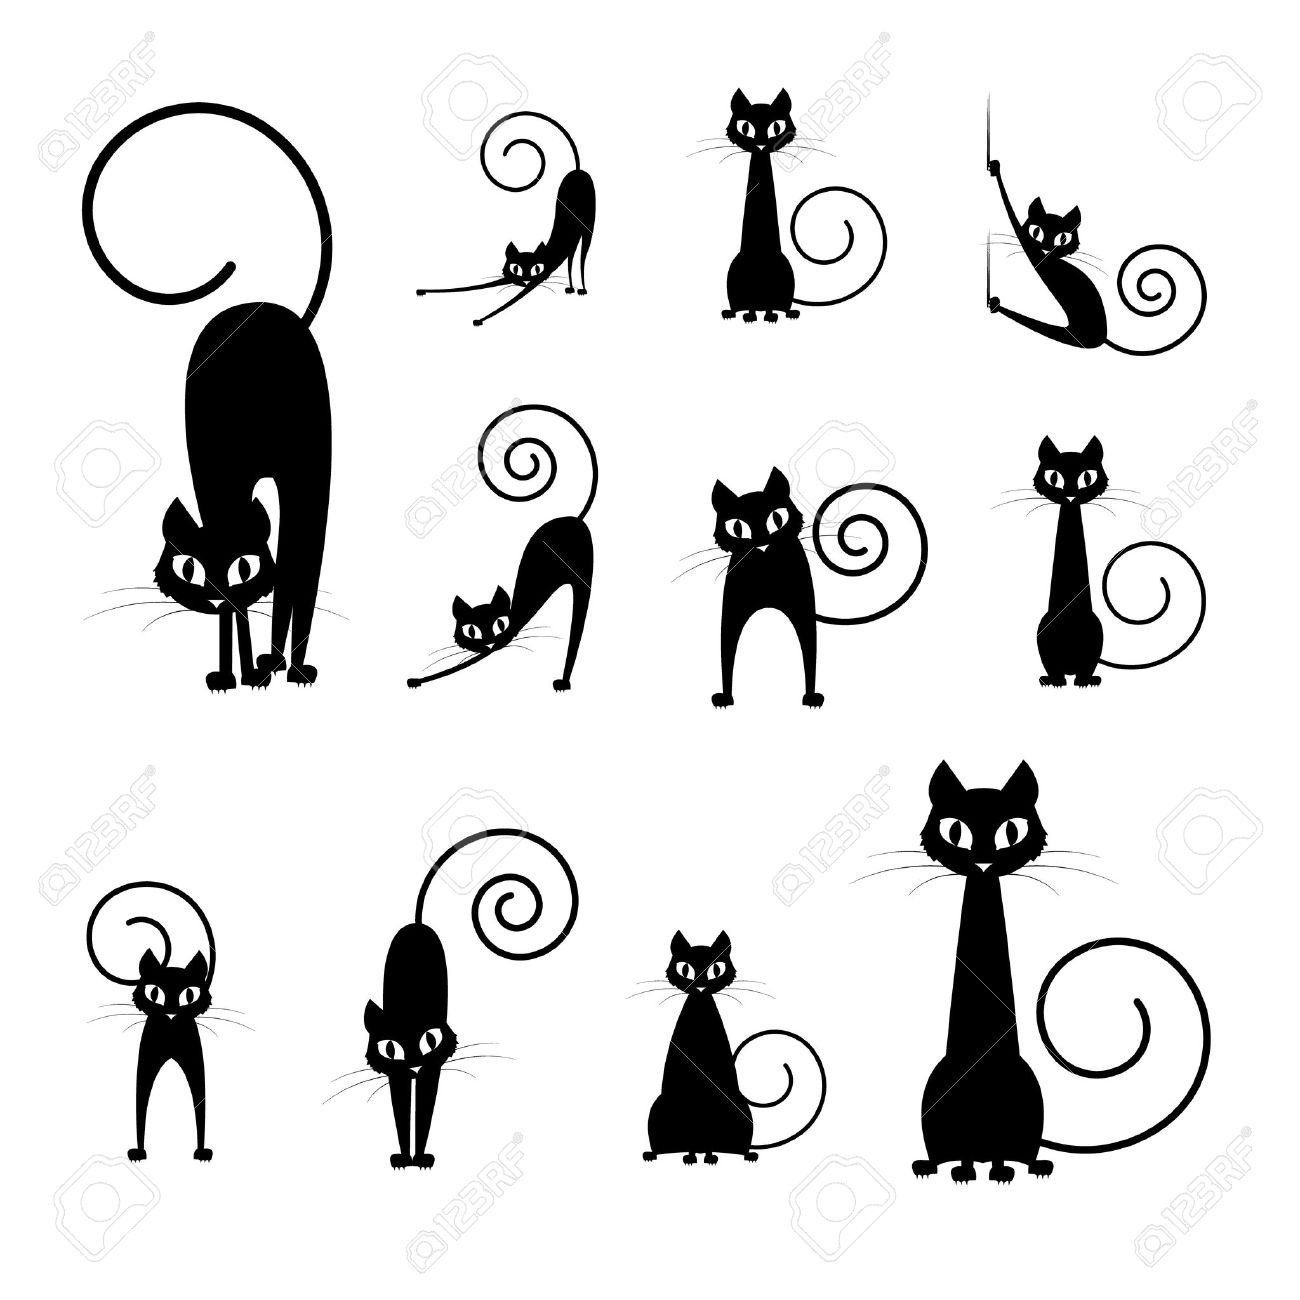 Black Cat Silhouette Collections, Cartoon Cat Black And White ...